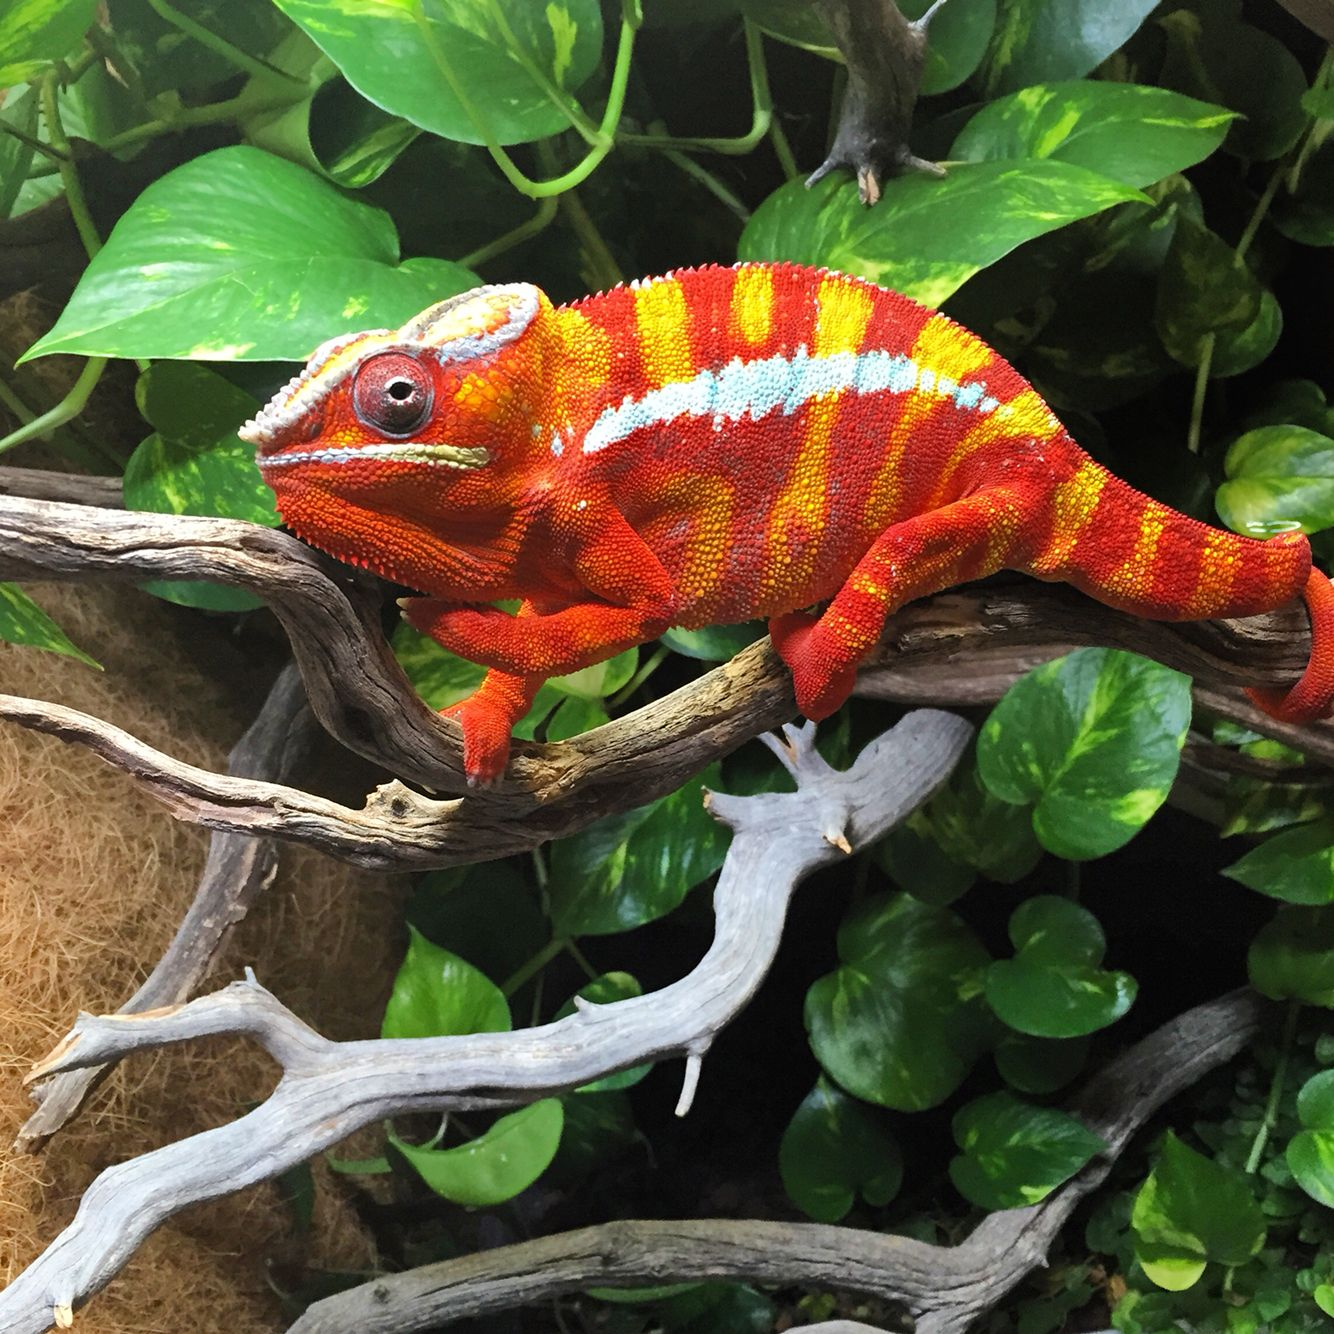 Male Panther Chameleon 'Mesmer'